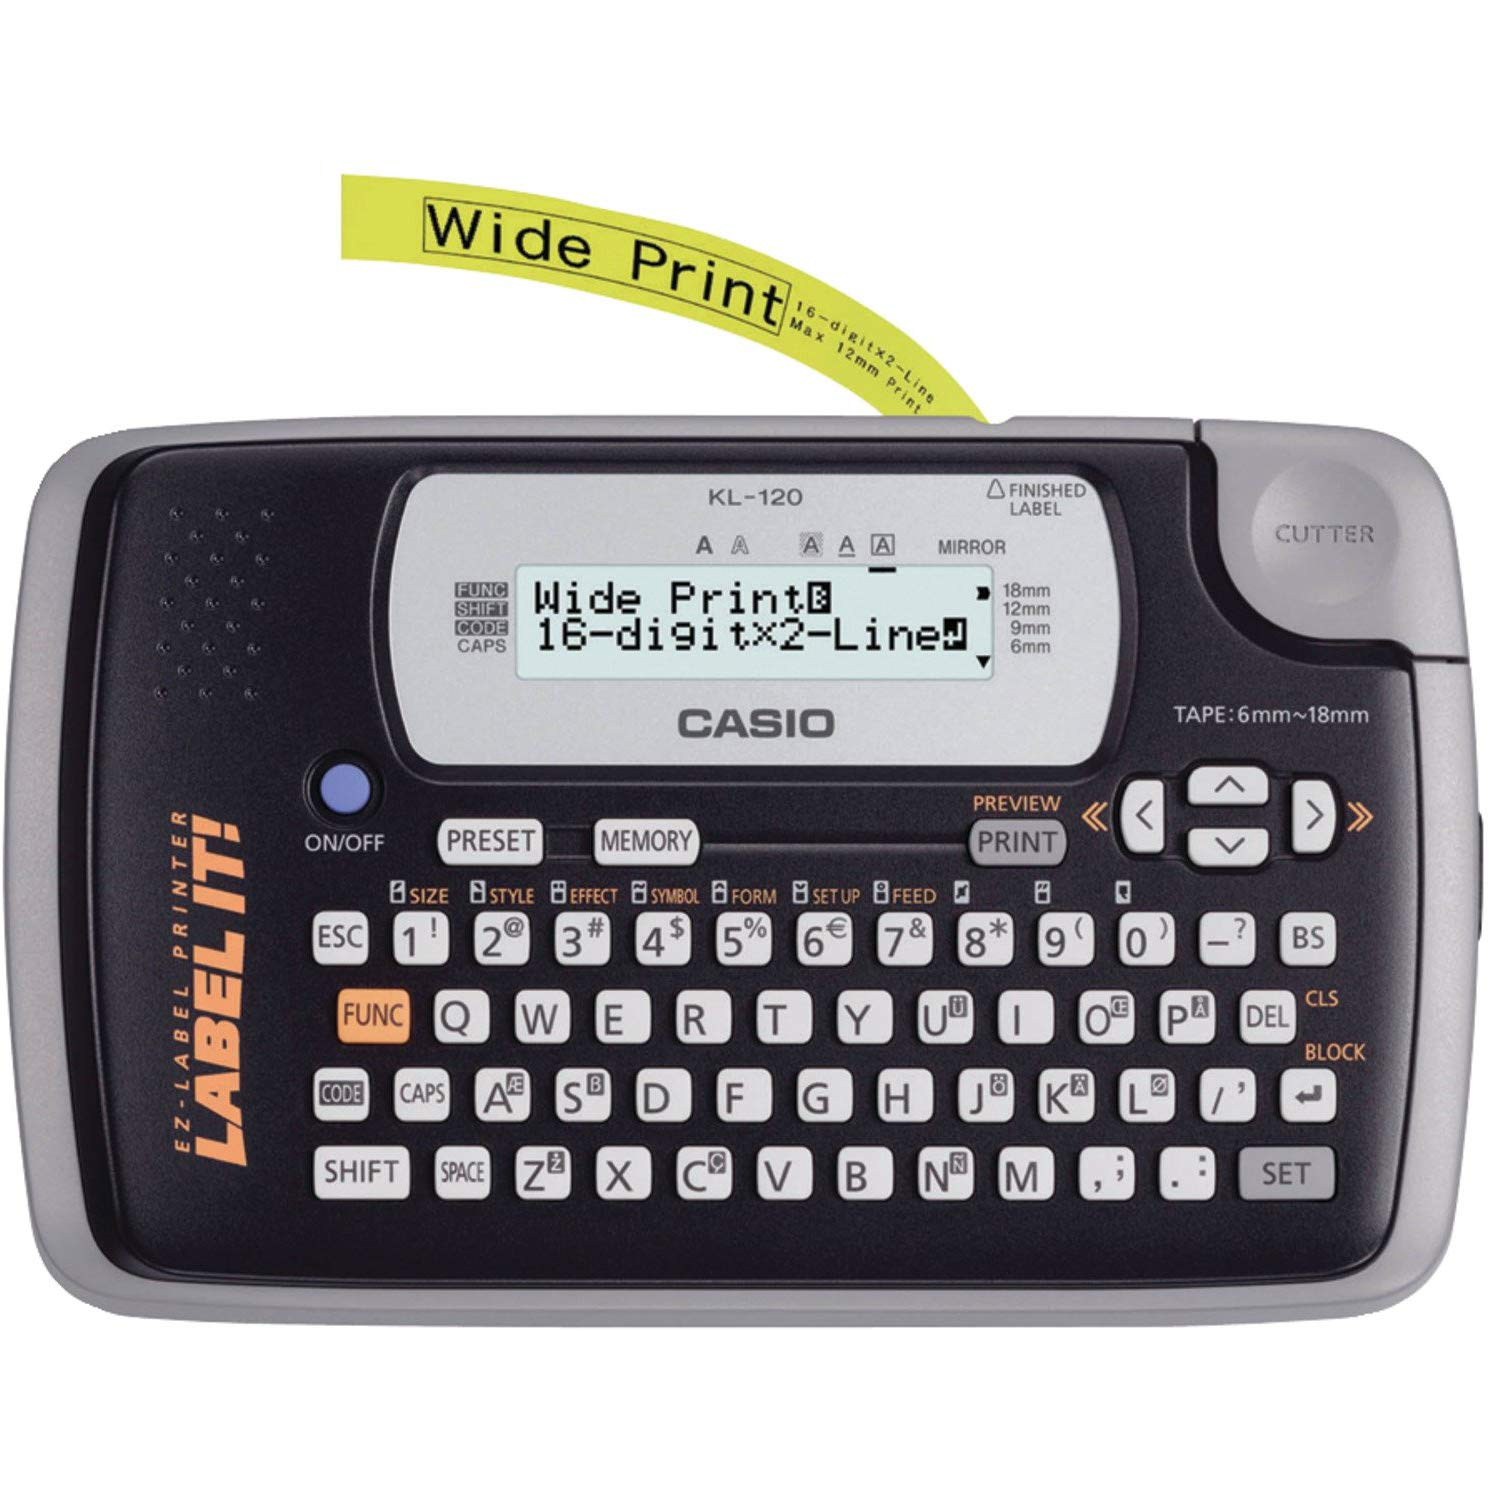 Casio KL-120 LABEL IT Label Printer